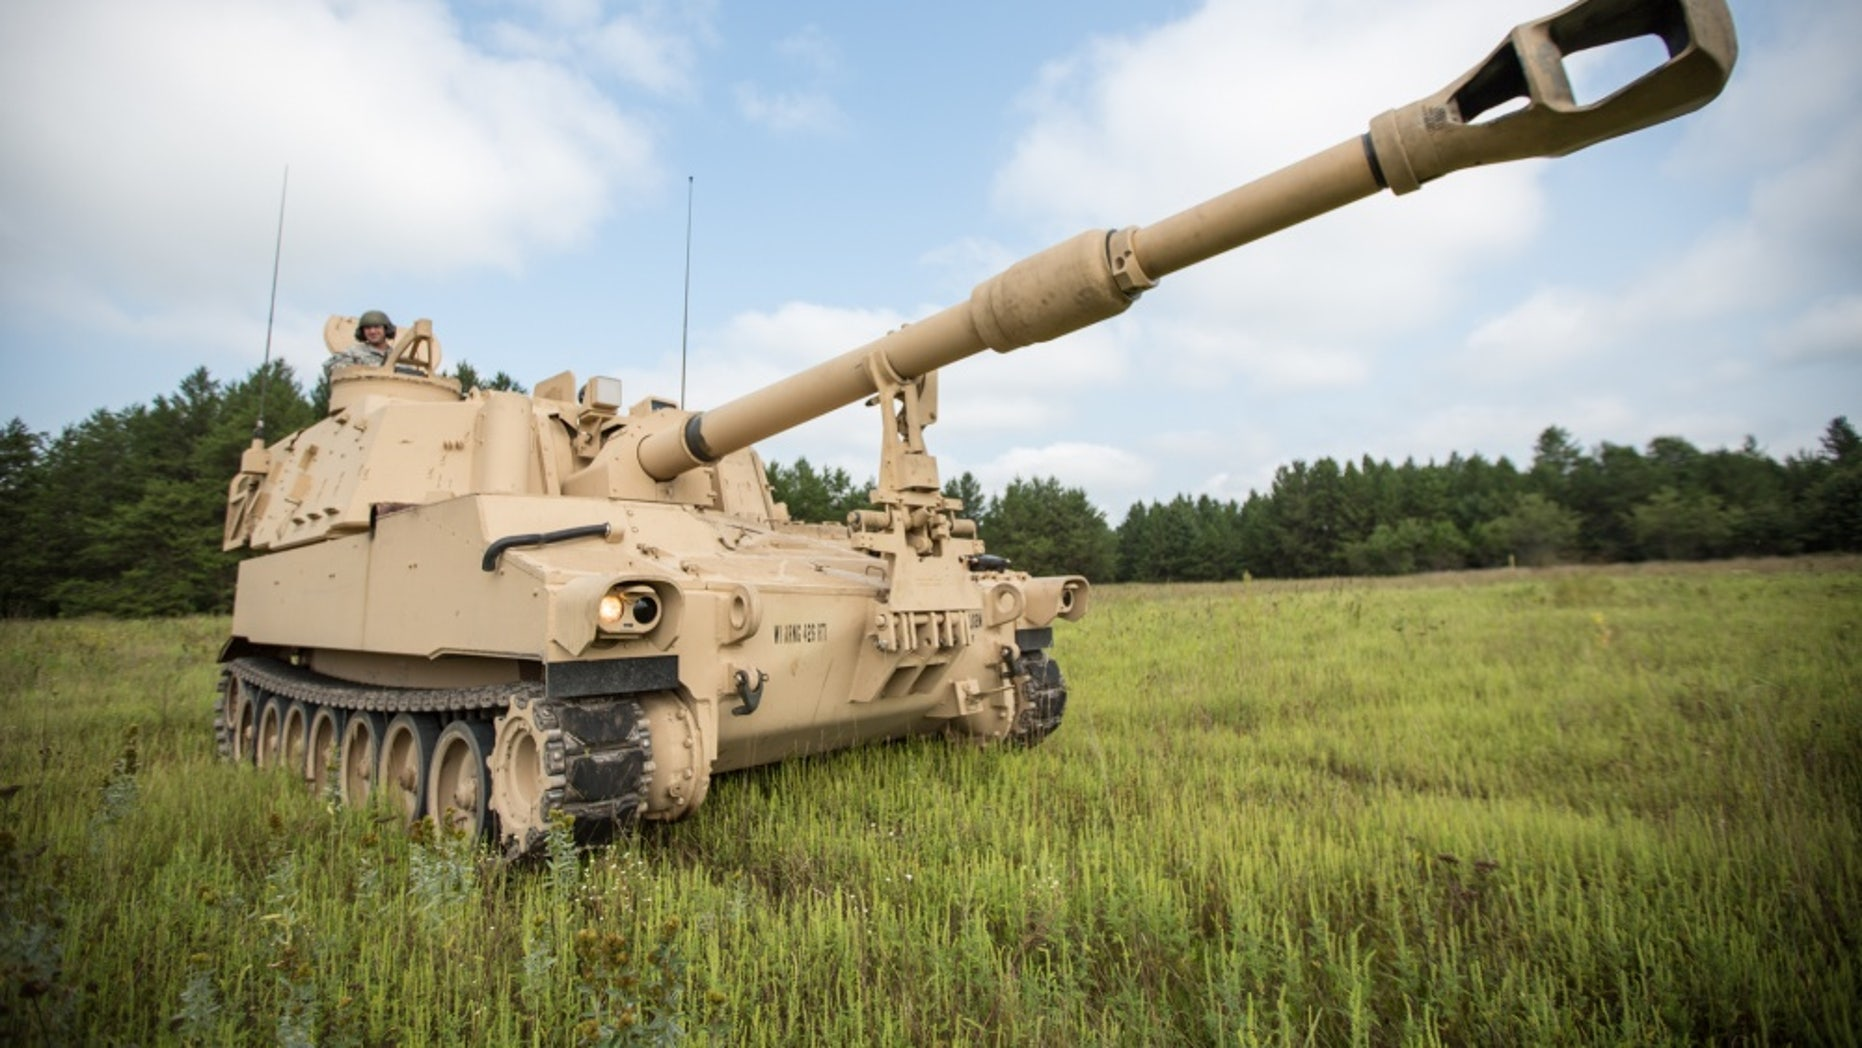 Army builds new self-propelled Howitzer - cannon will hit 43 5 miles